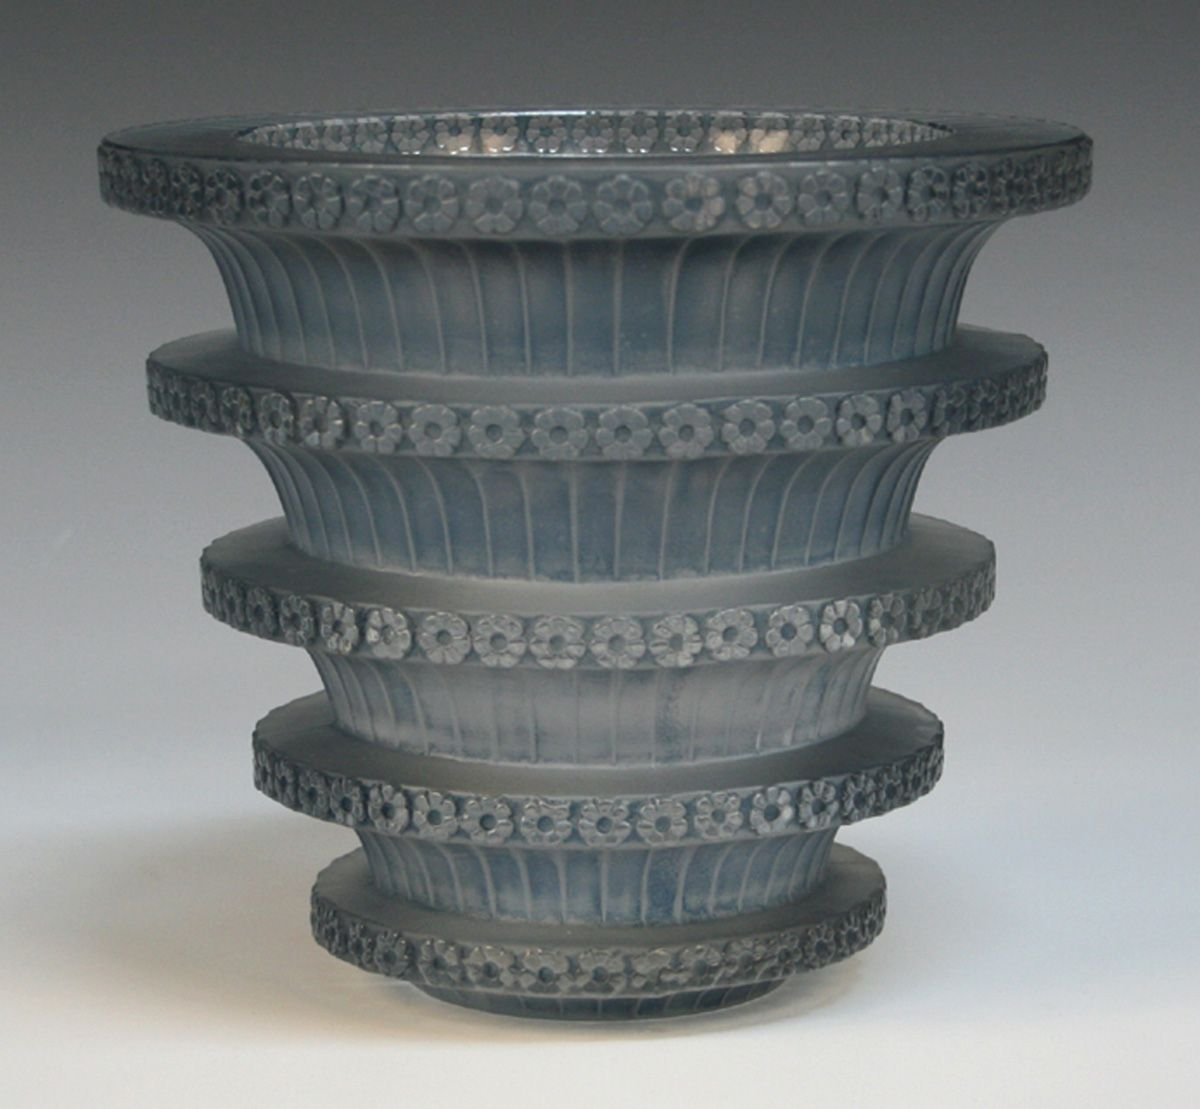 An Art Deco Lalique frosted and blue stained Chevreuse pattern vase, 1930s, of flared cylindrical shape with five horizontal convex bands moulded with flowerhead decoration, acid etched mark to base 'R. Lalique France', height approx 16cm.